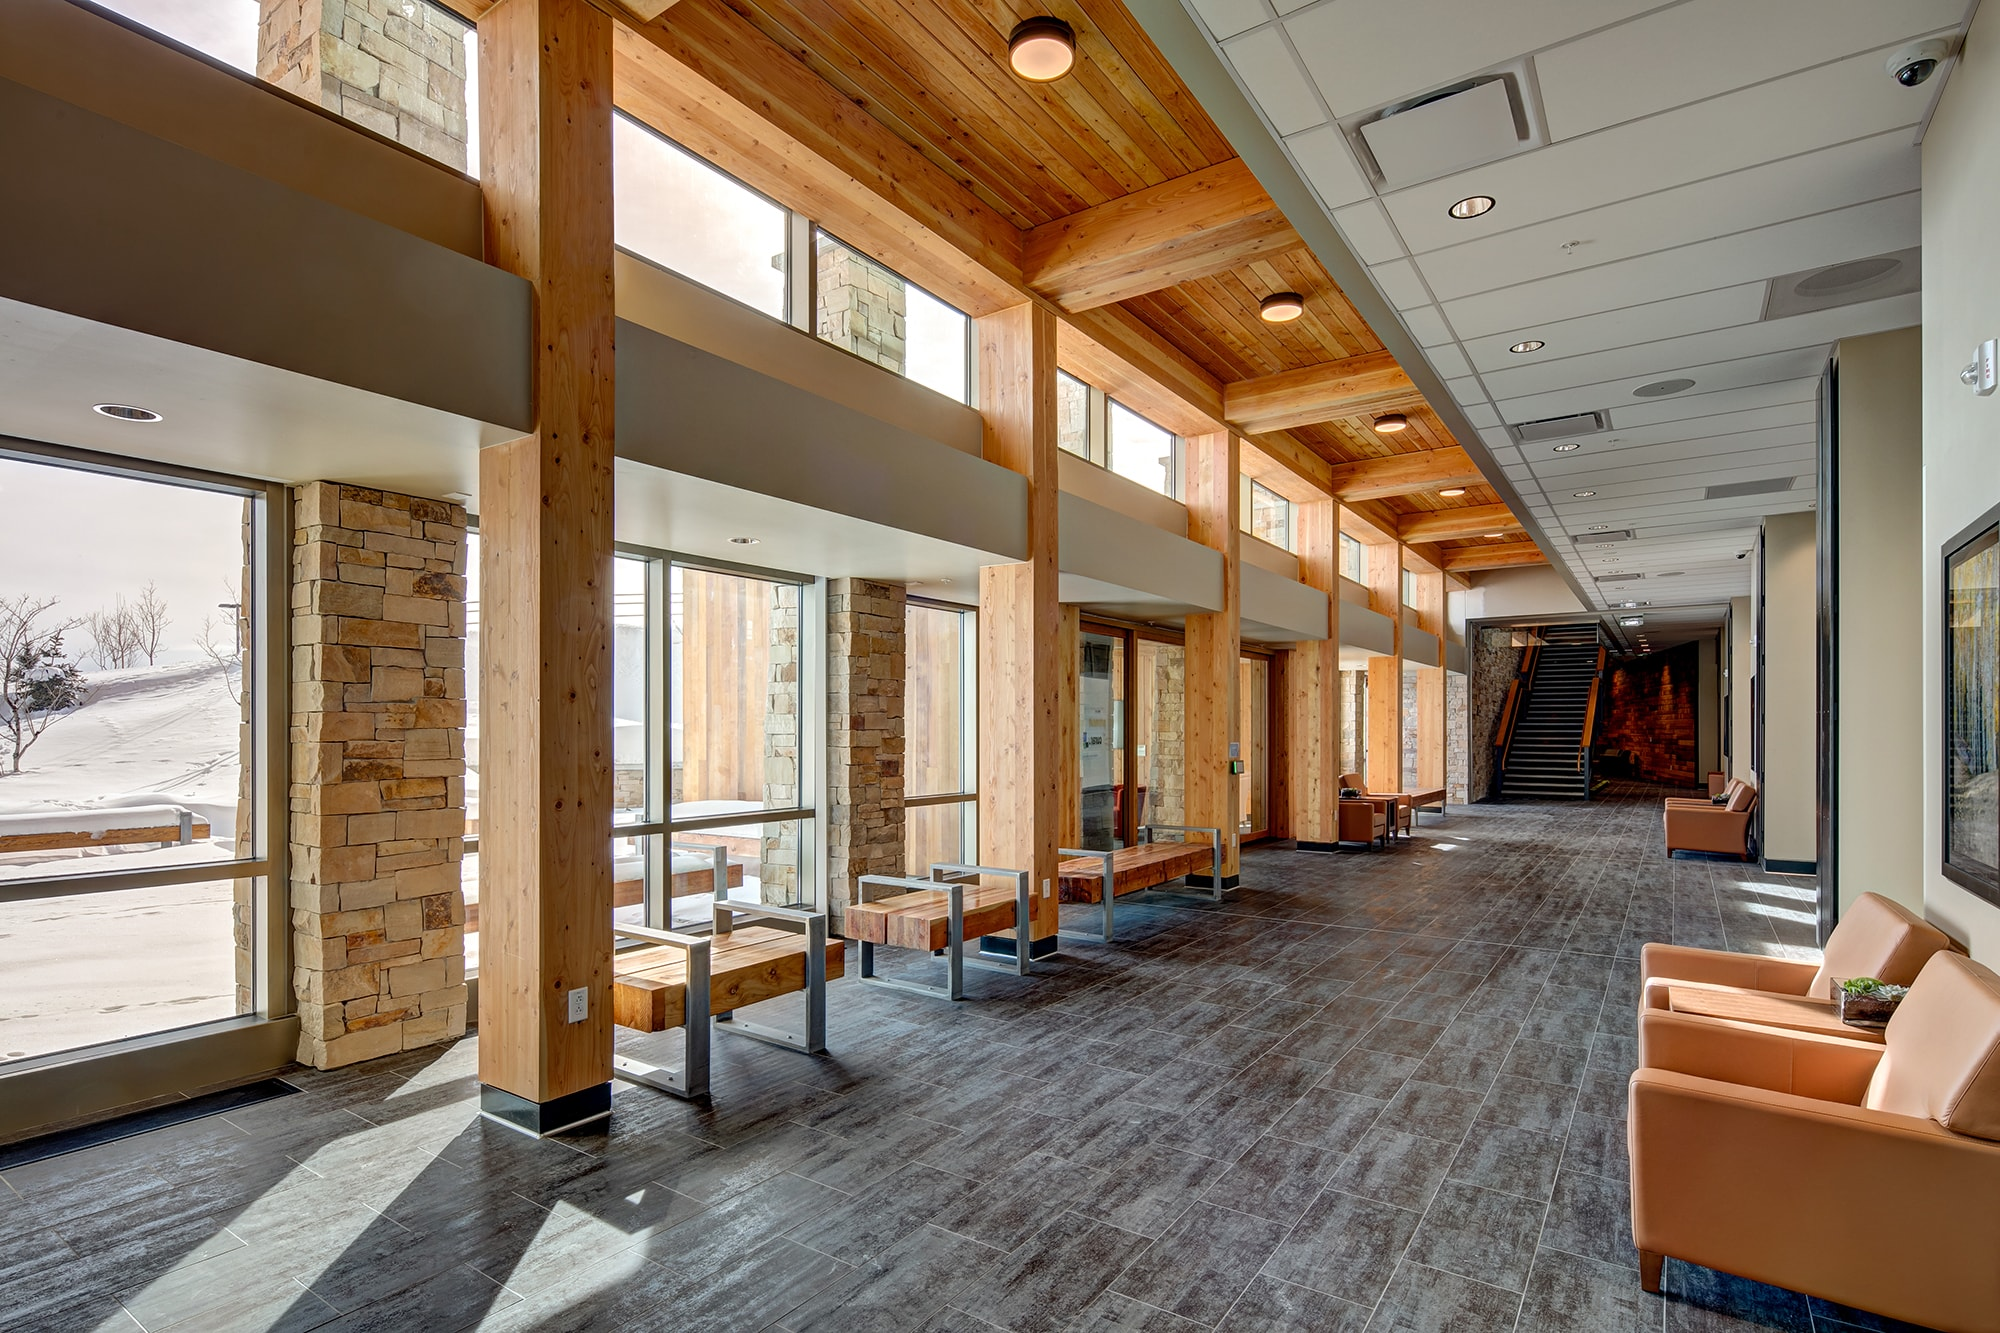 Park City Hospital Outpatient Expansion and 3rd Floor Med